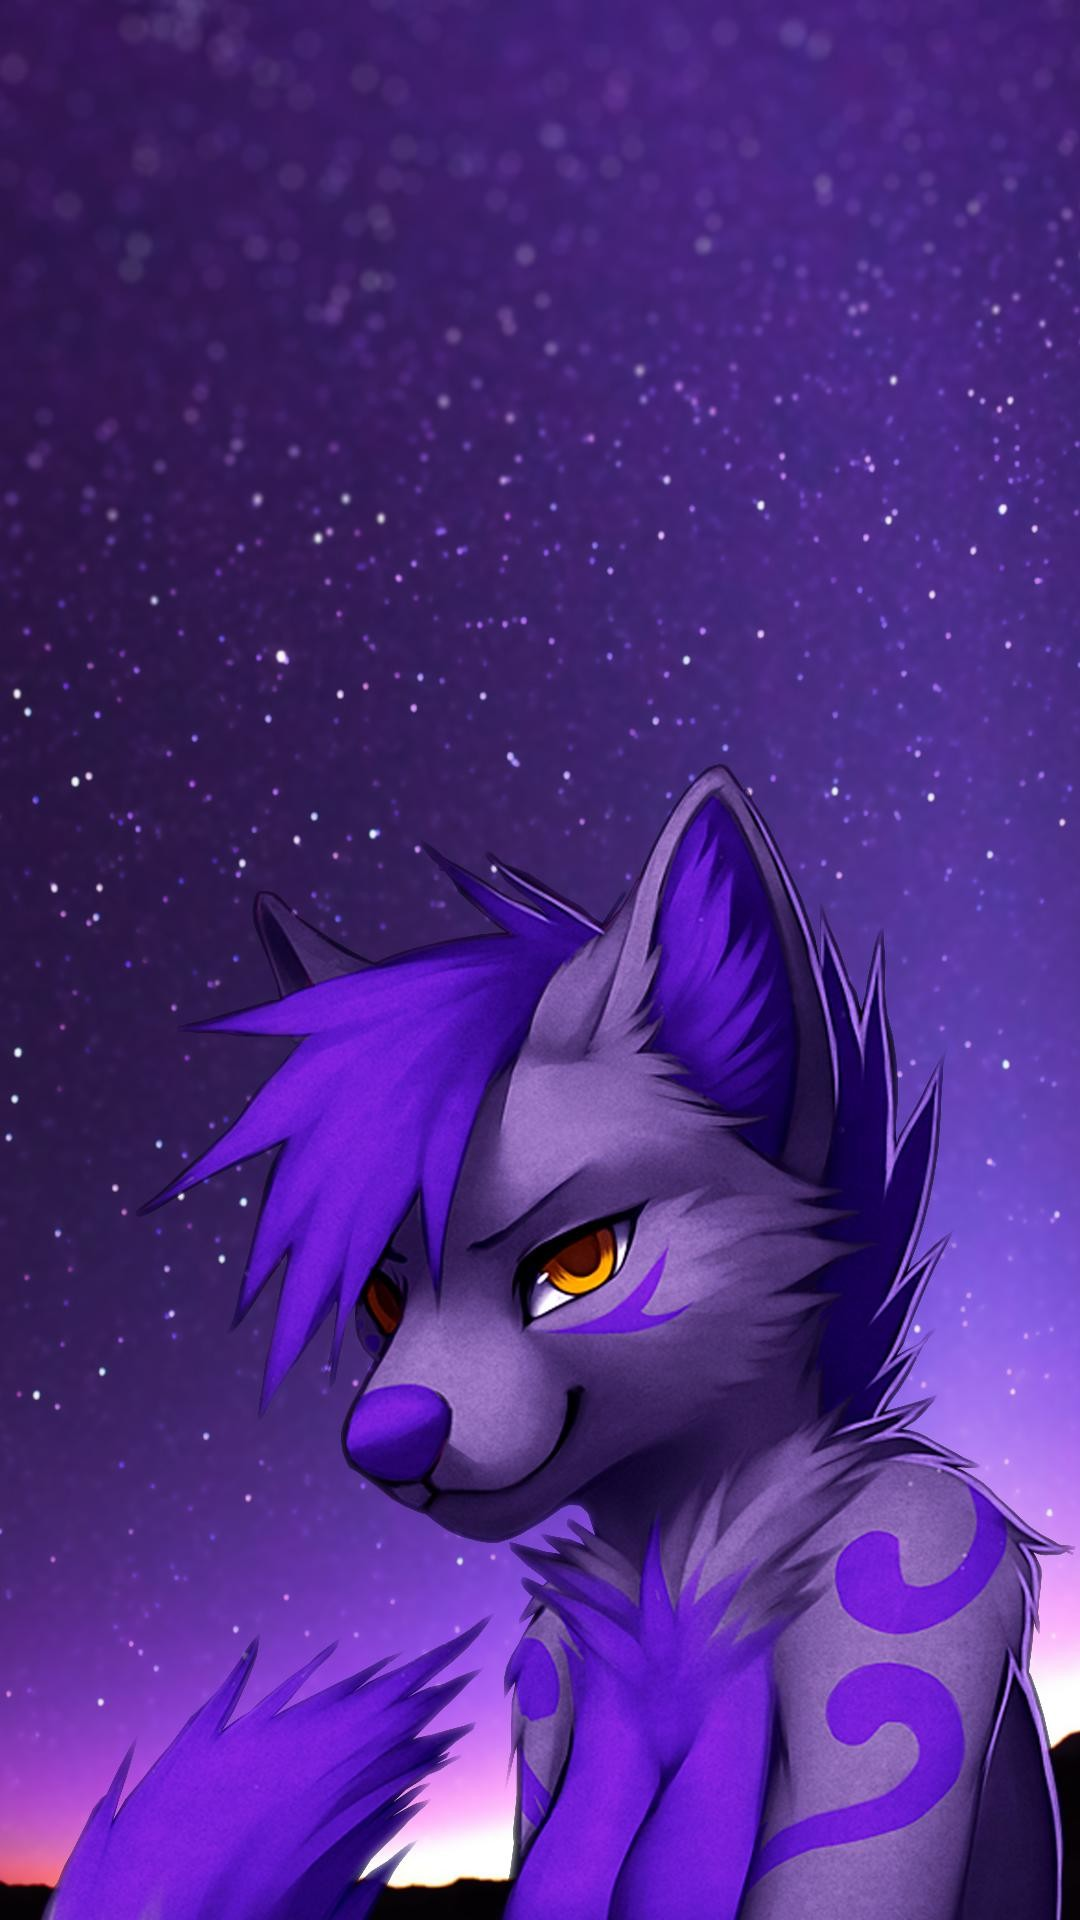 Res: 1080x1920, Just made this for my new Galaxy S5 []